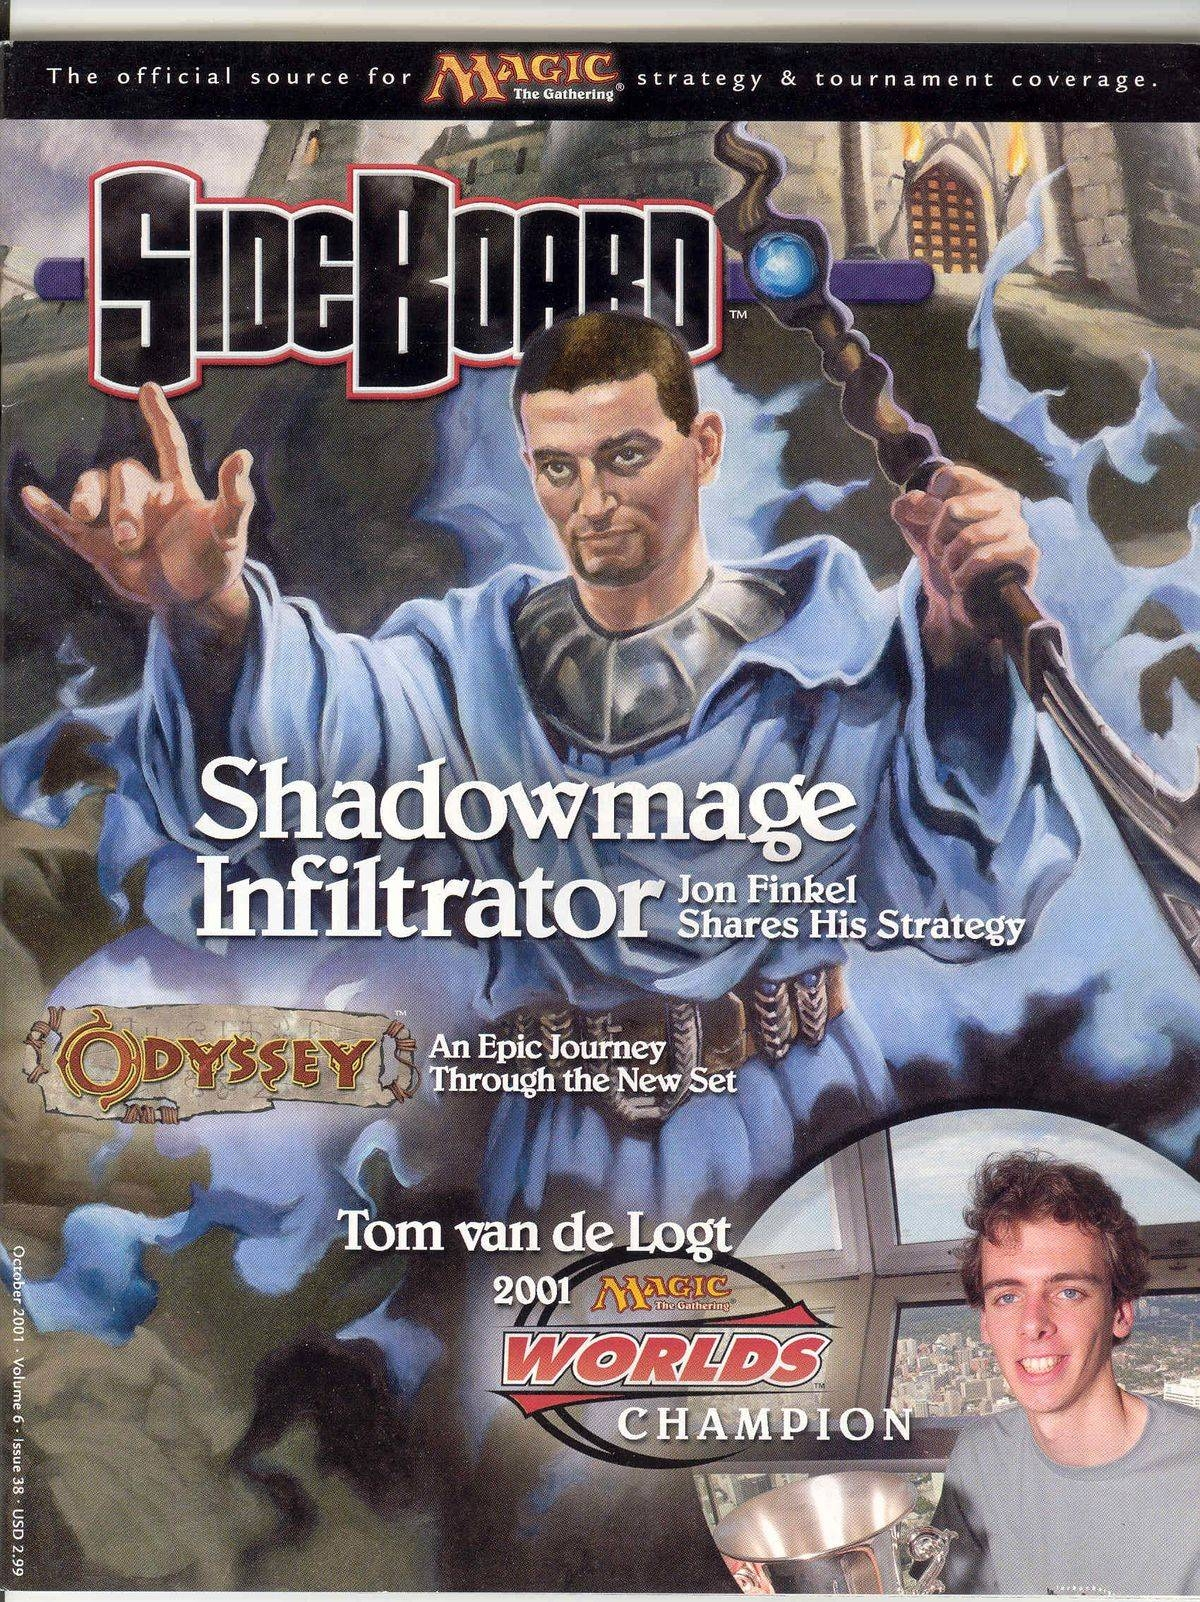 Sideboard (Magazine) - Mtg Wiki for Magic The Gathering Sideboards (Image 8 of 15)